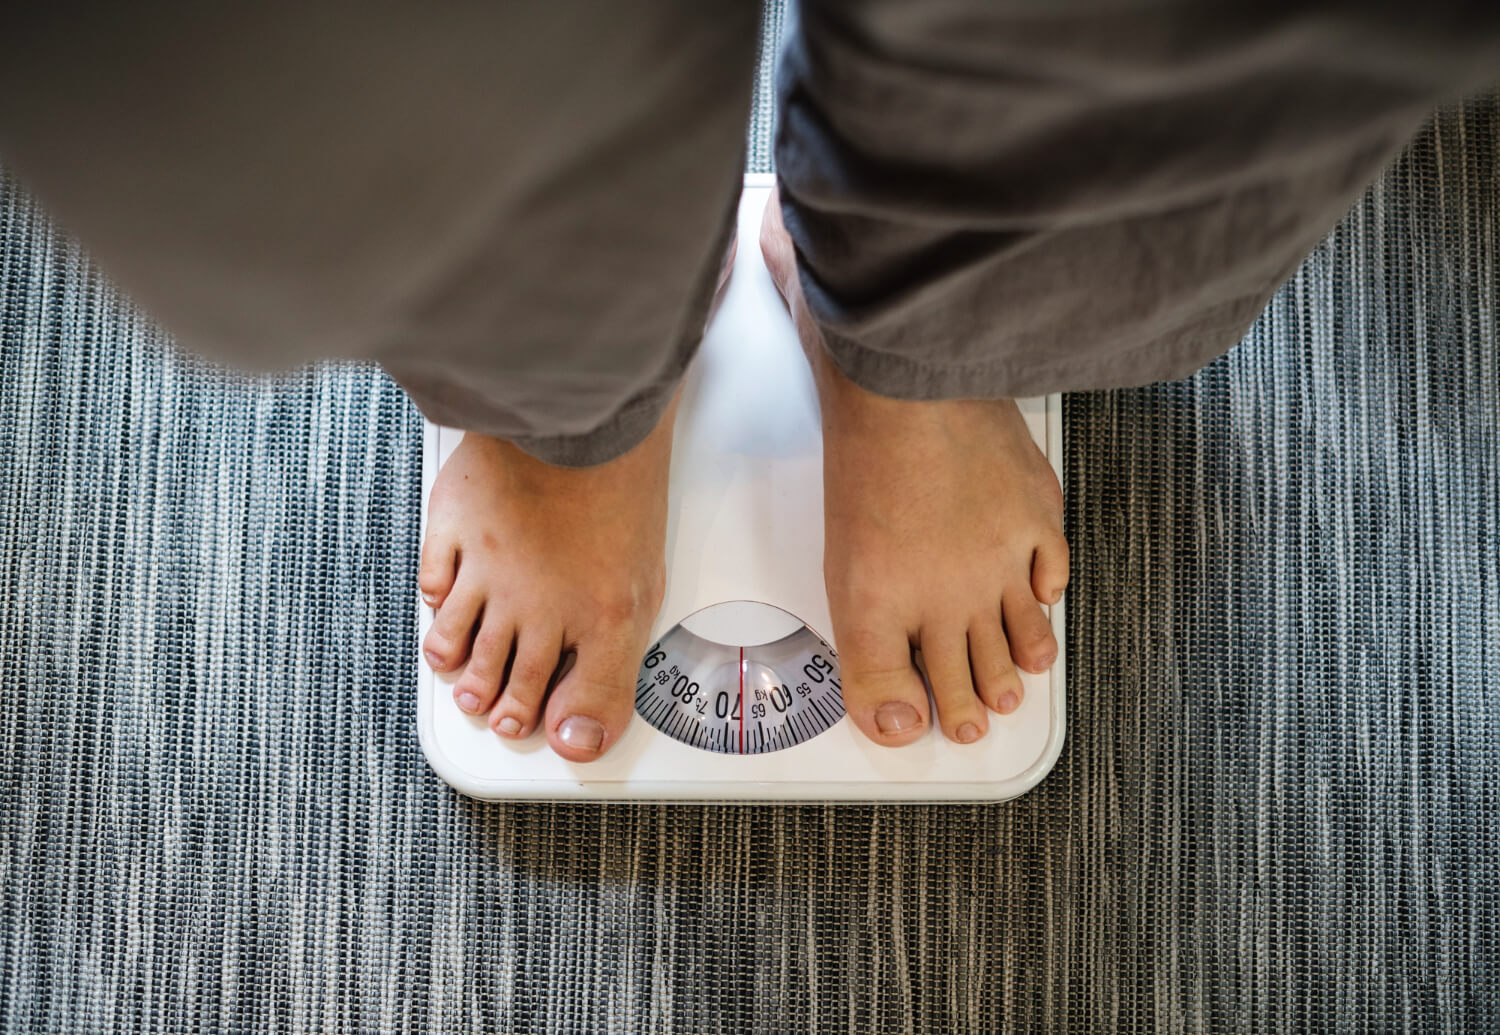 How To Calculate BMI and What Are the Uses of This?